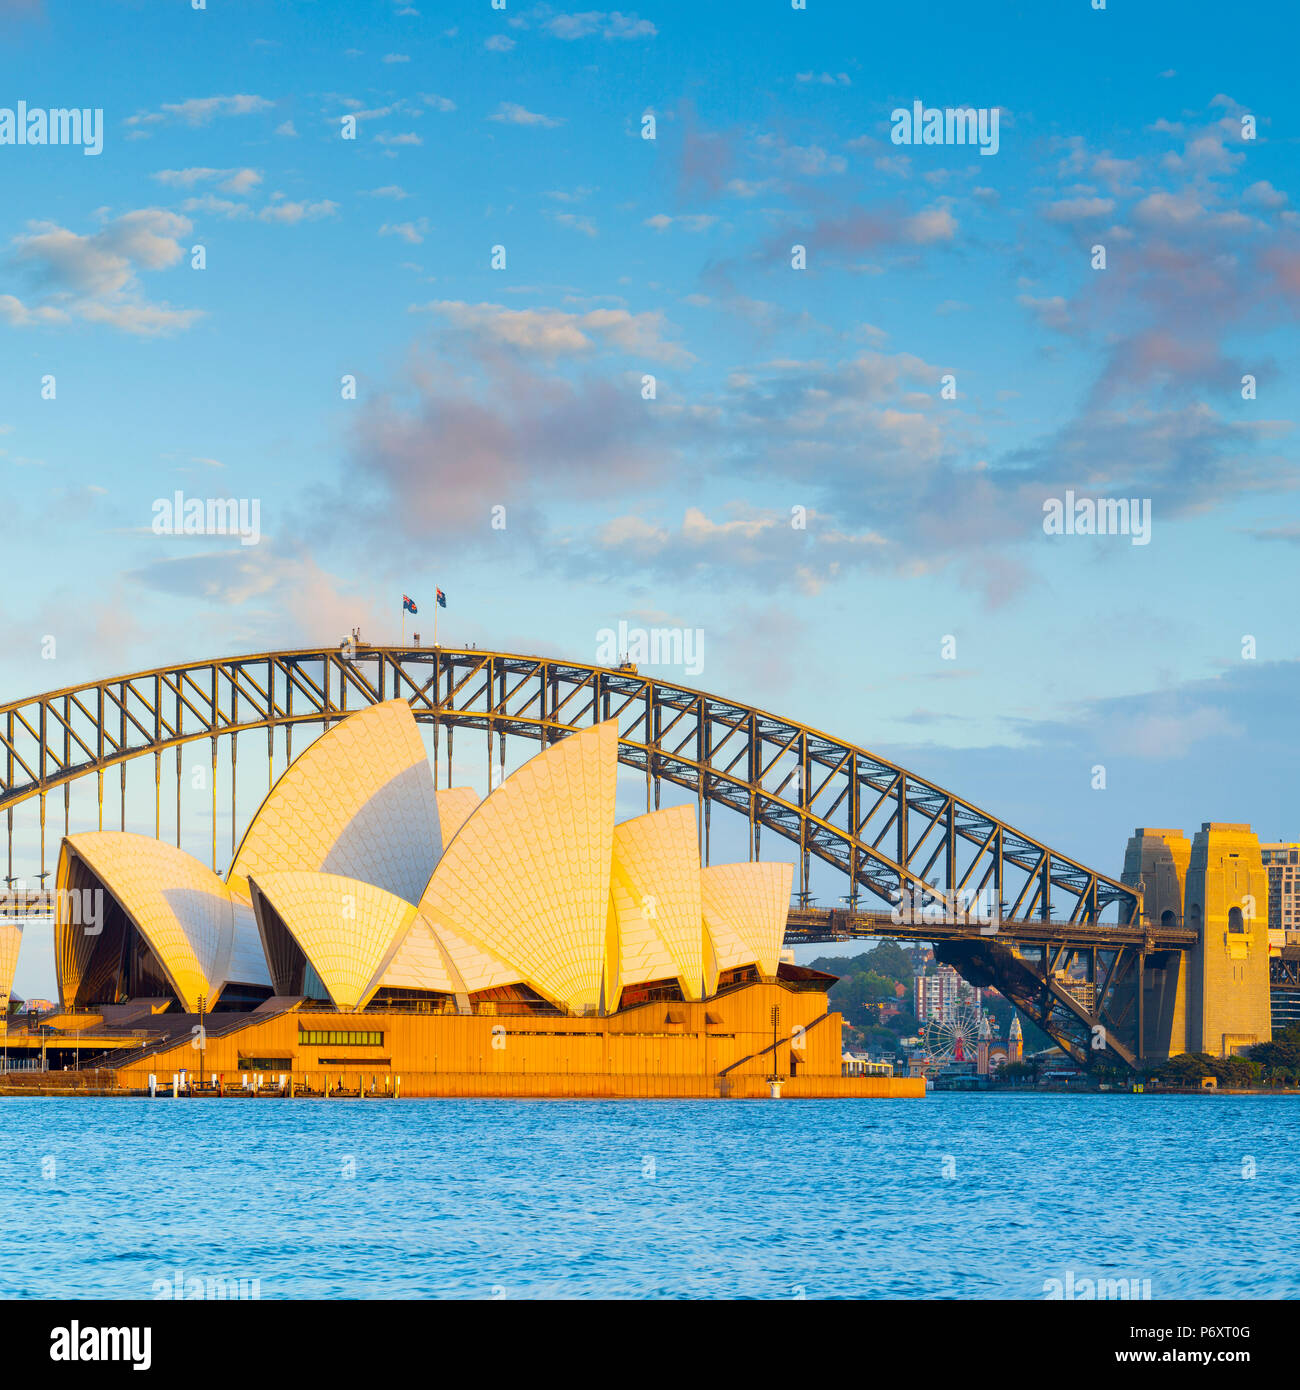 Sydney Opera House & Harbour Bridge, il Darling Harbour, Sydney, Nuovo Galles del Sud, Australia Immagini Stock